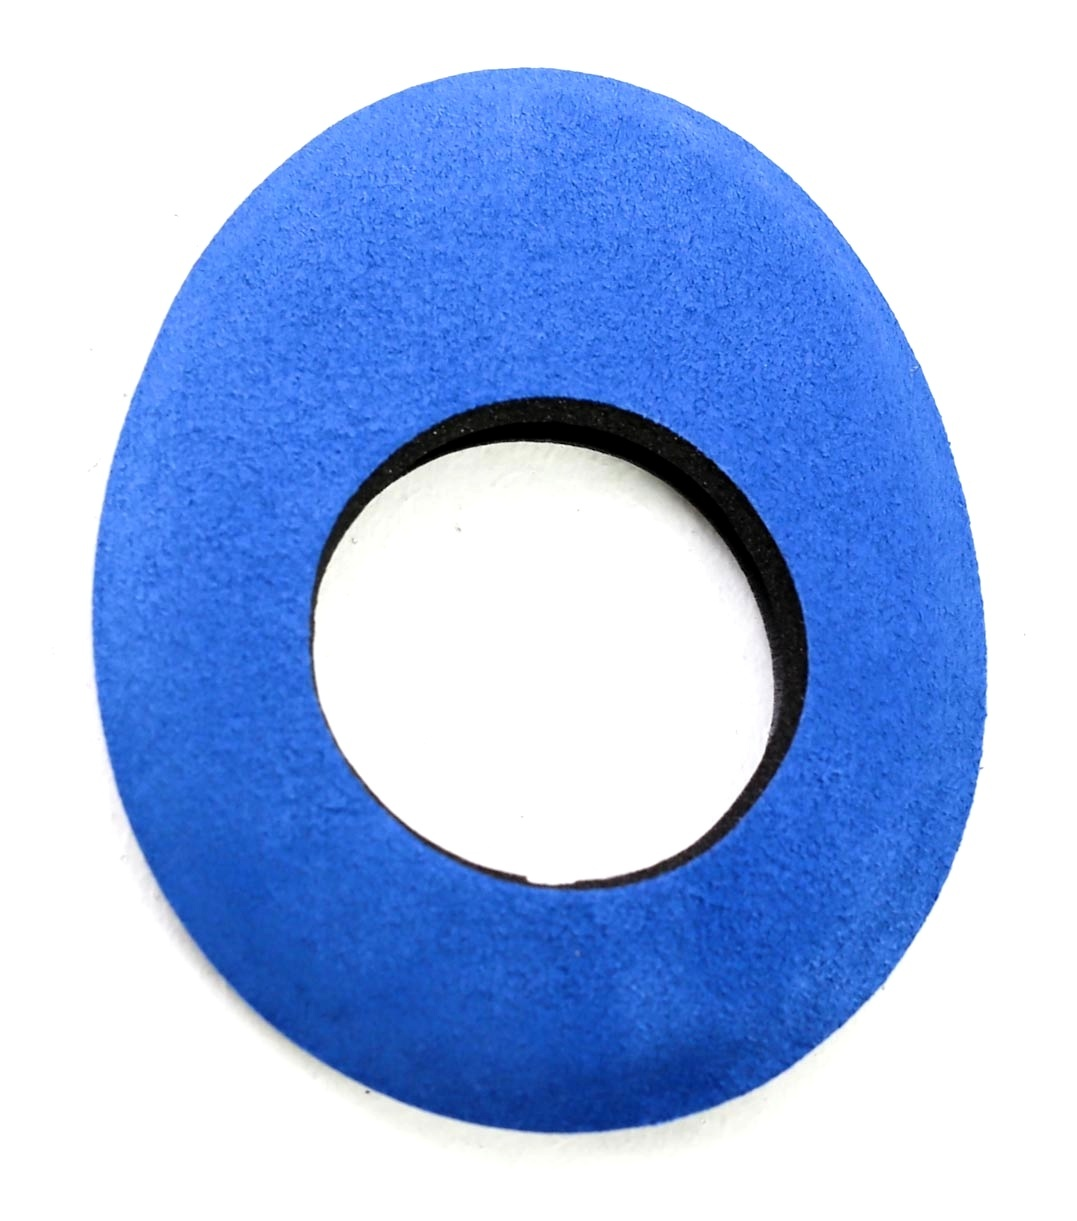 Bluestar Large Oval Eyecushion - Microfibre (Blue)